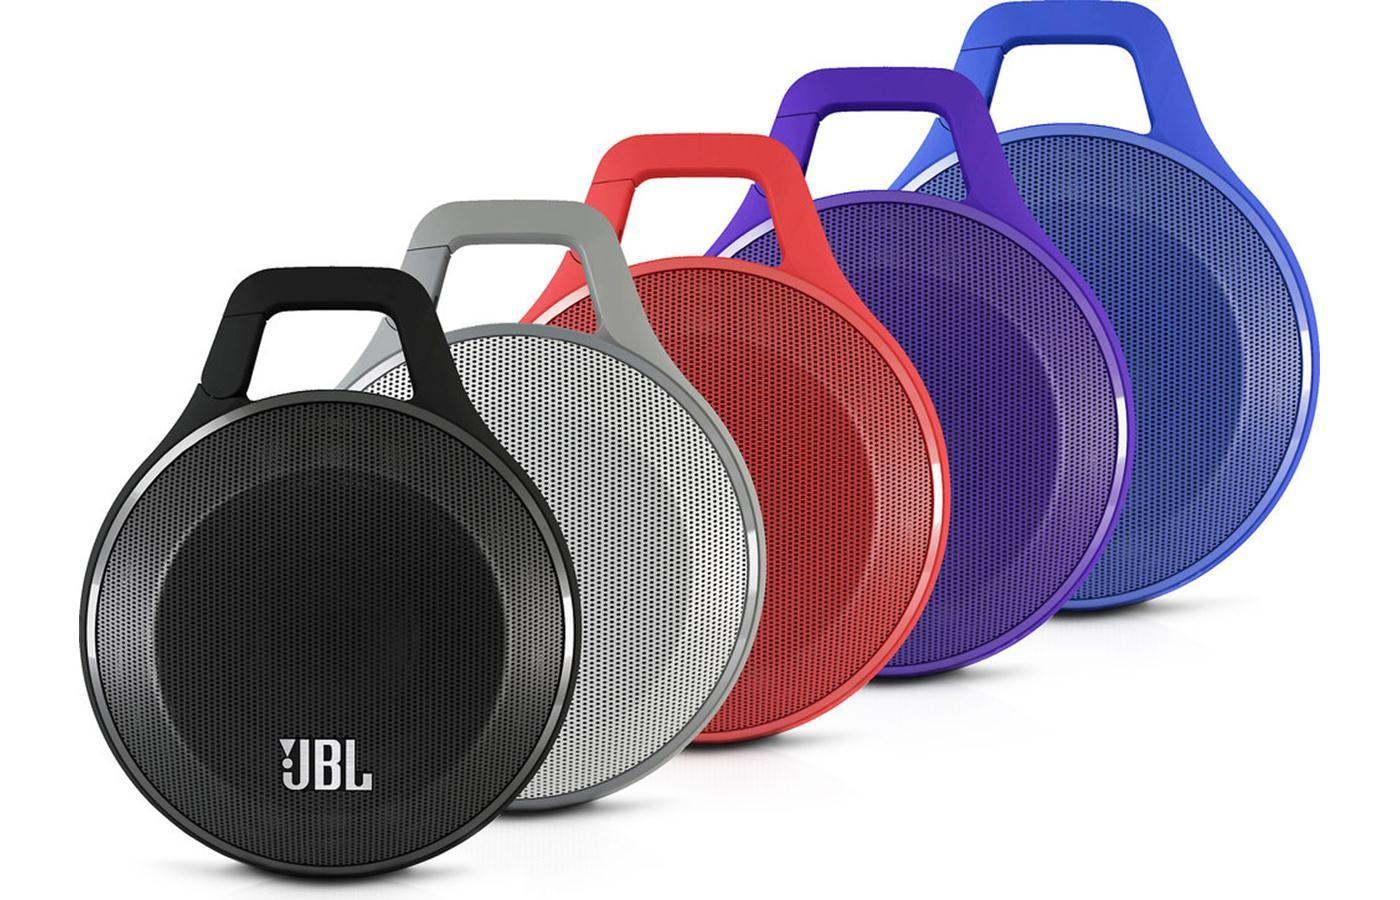 JBL Clip Portable Bluetooth Speaker, in 5 Colors,RECERTIFIED